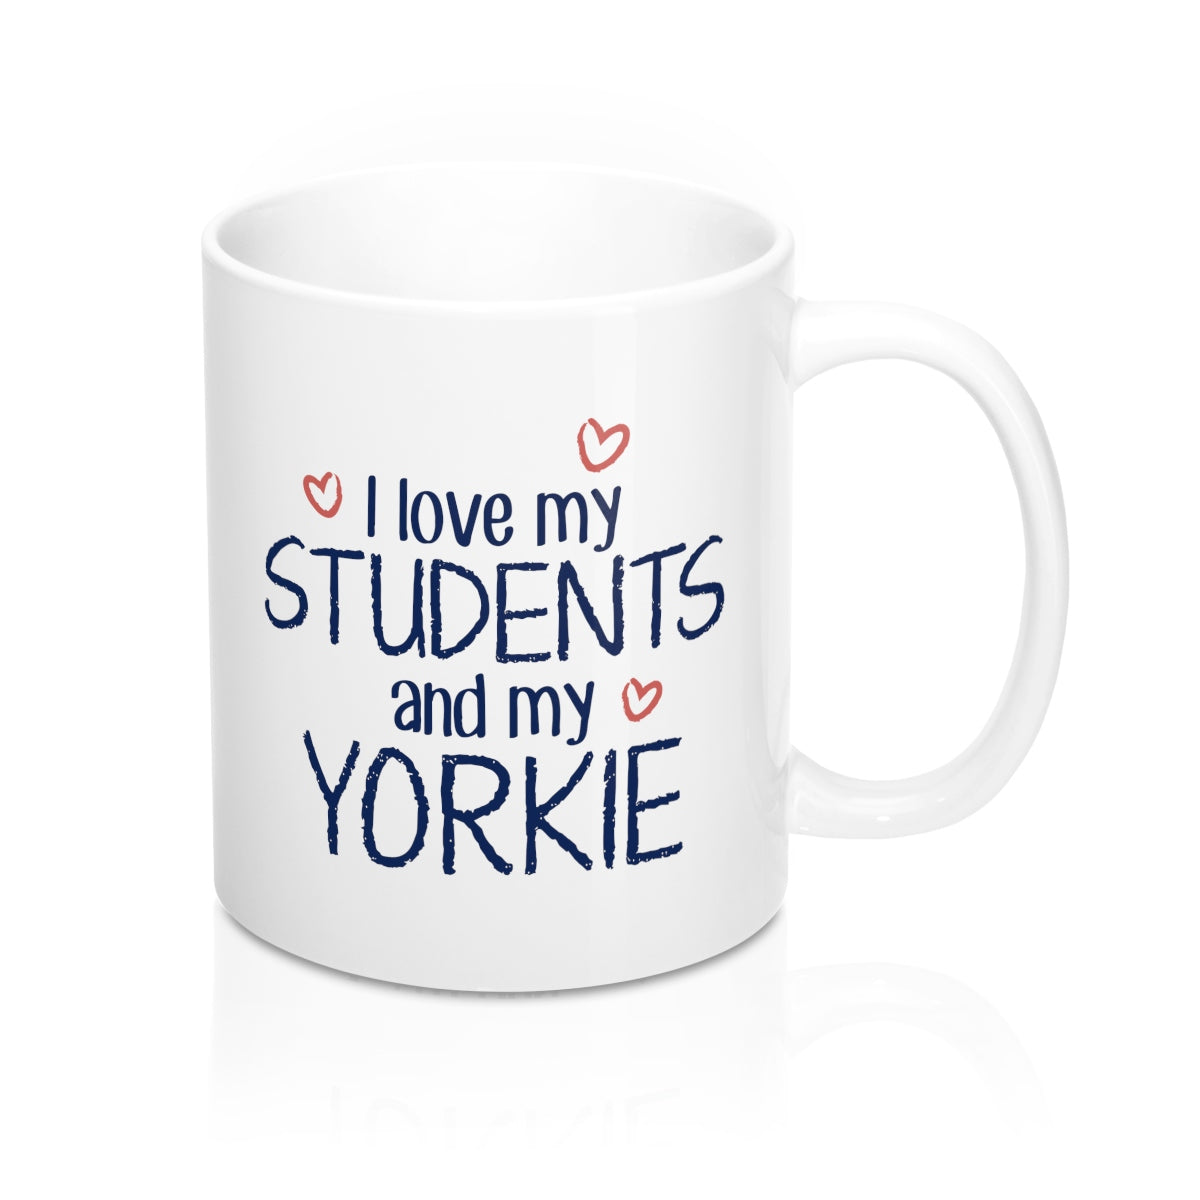 I Love My Students and My Yorkie Coffee Mug